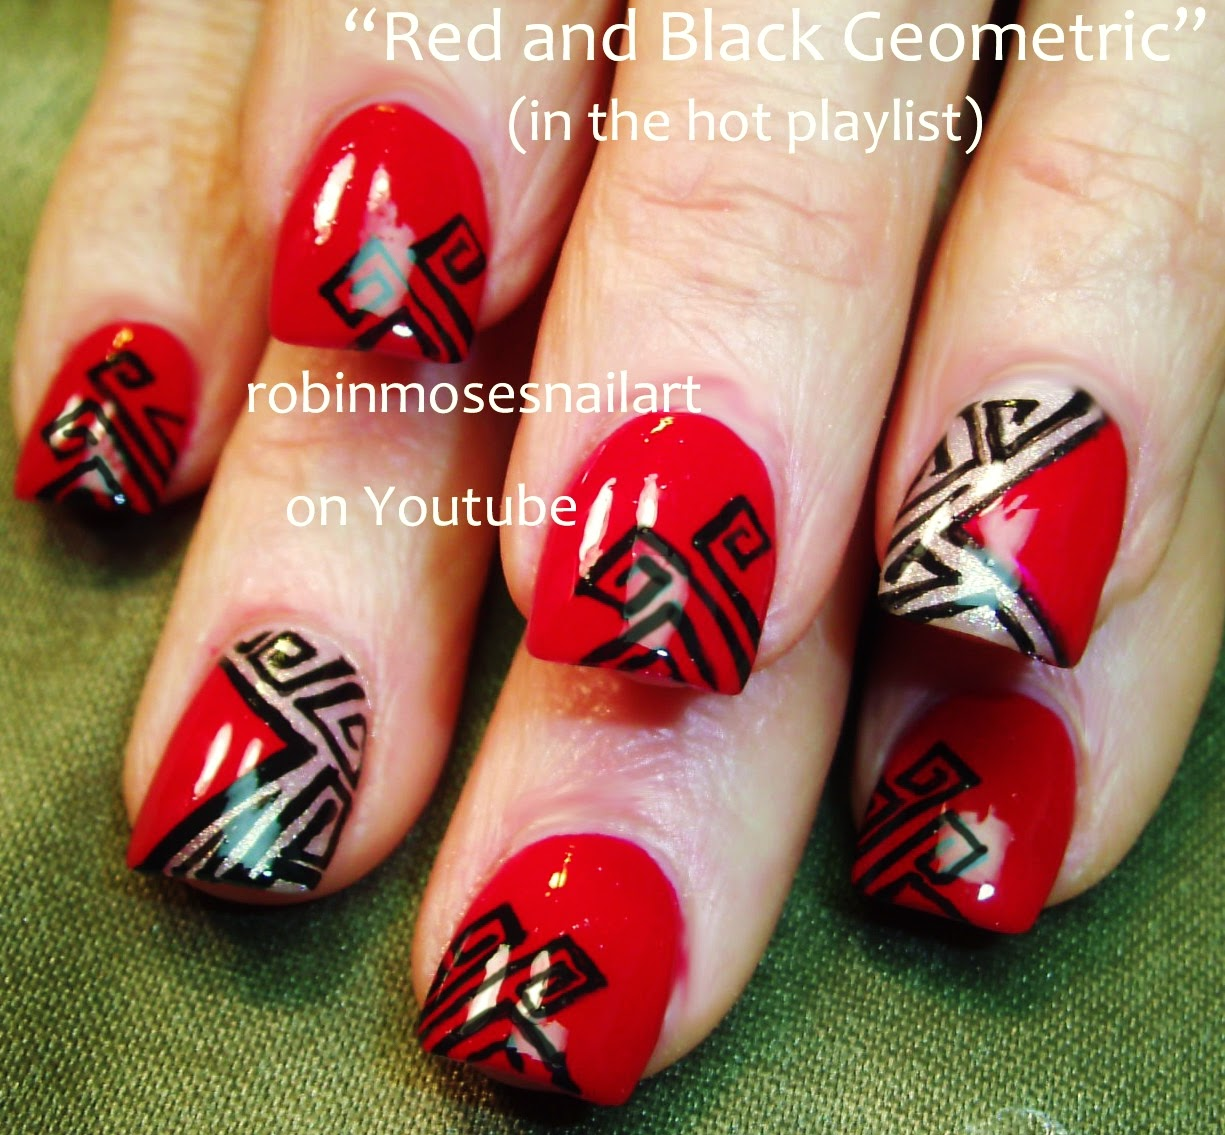 Robin Moses Nail Art February 2015: Robin Moses Nail Art: April 2015